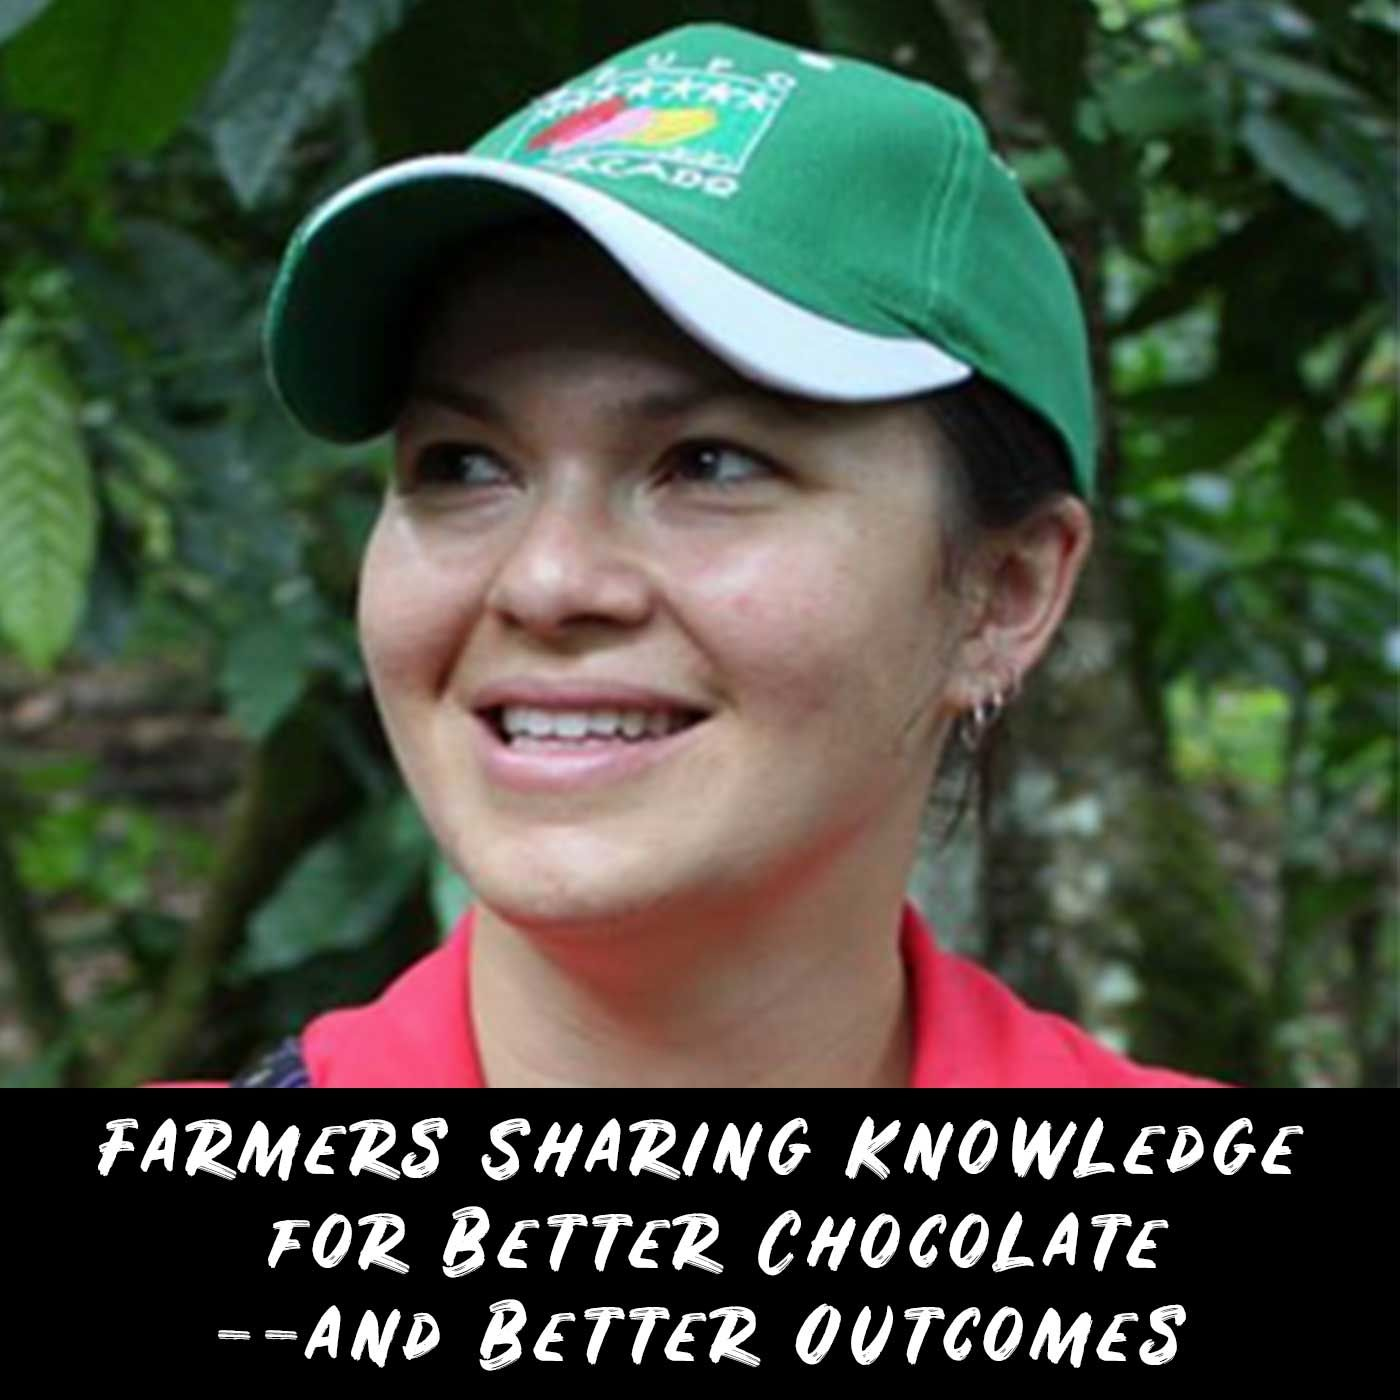 Farmers Sharing Knowledge for Better Chocolate -- and Better Outcomes